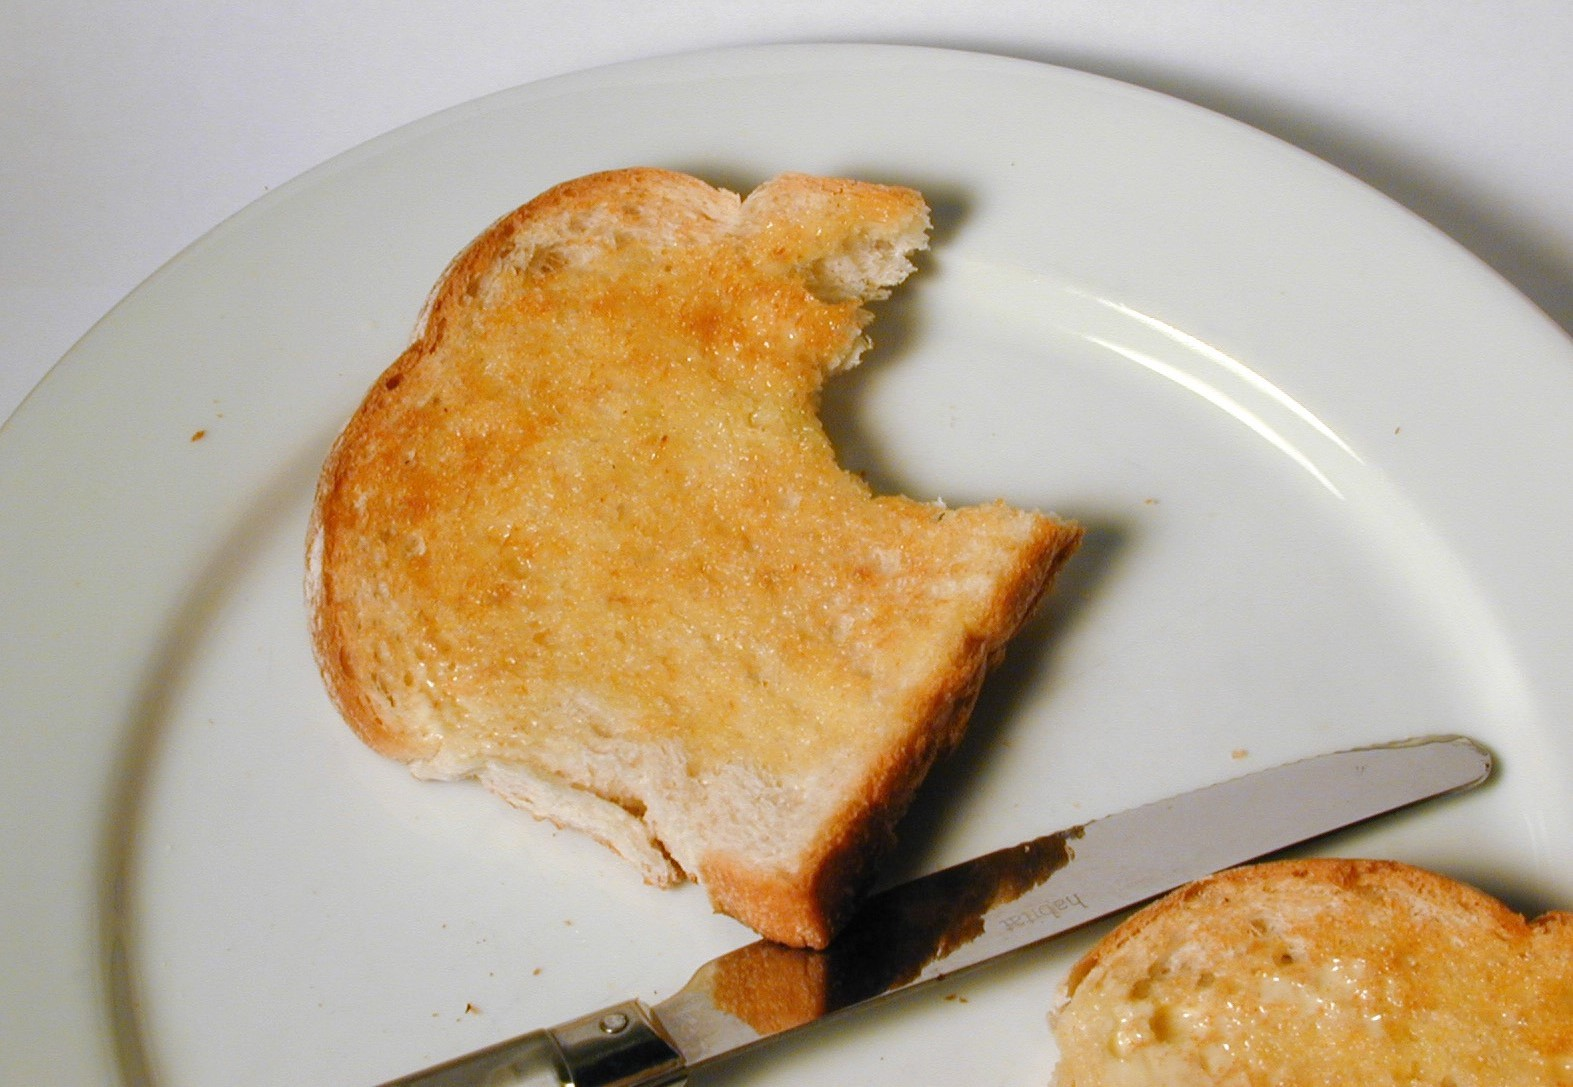 free image of slice of white toast bitten into